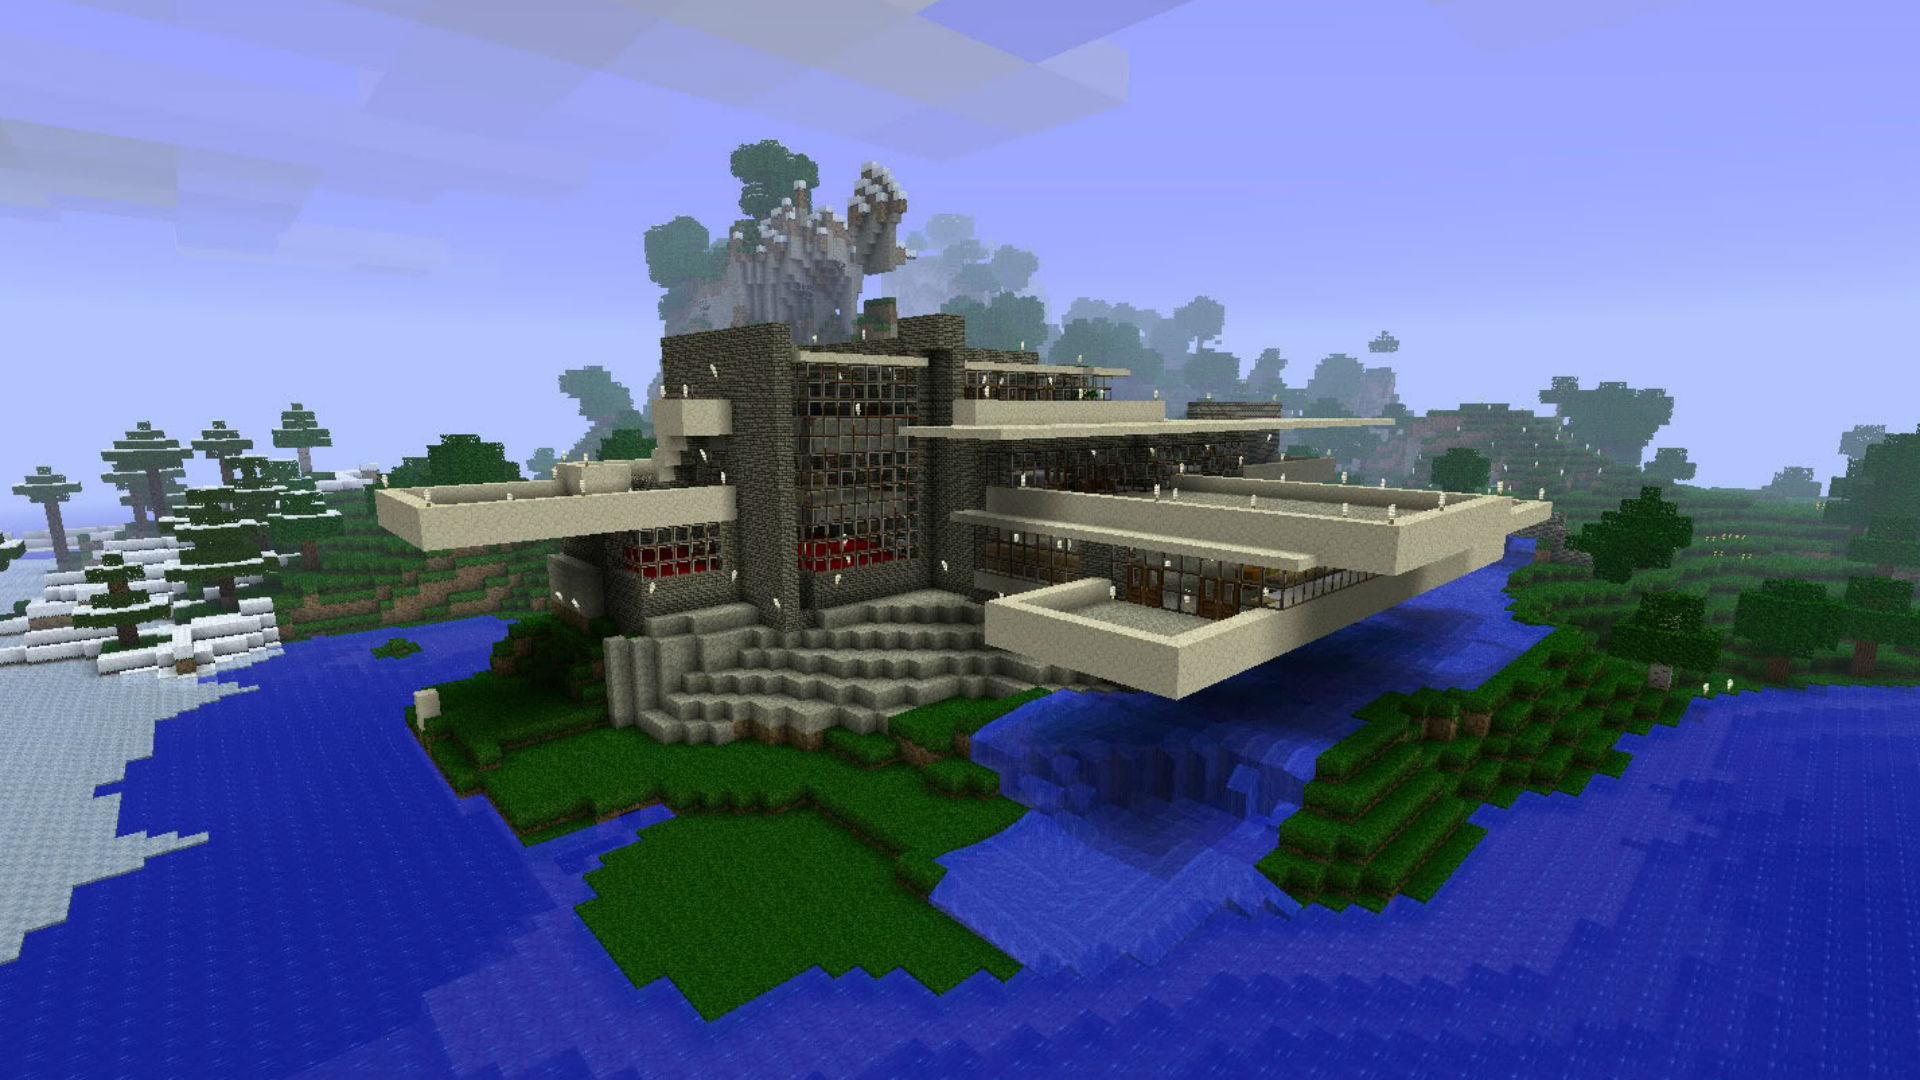 Best Minecraft builds: the cool constructions you need to